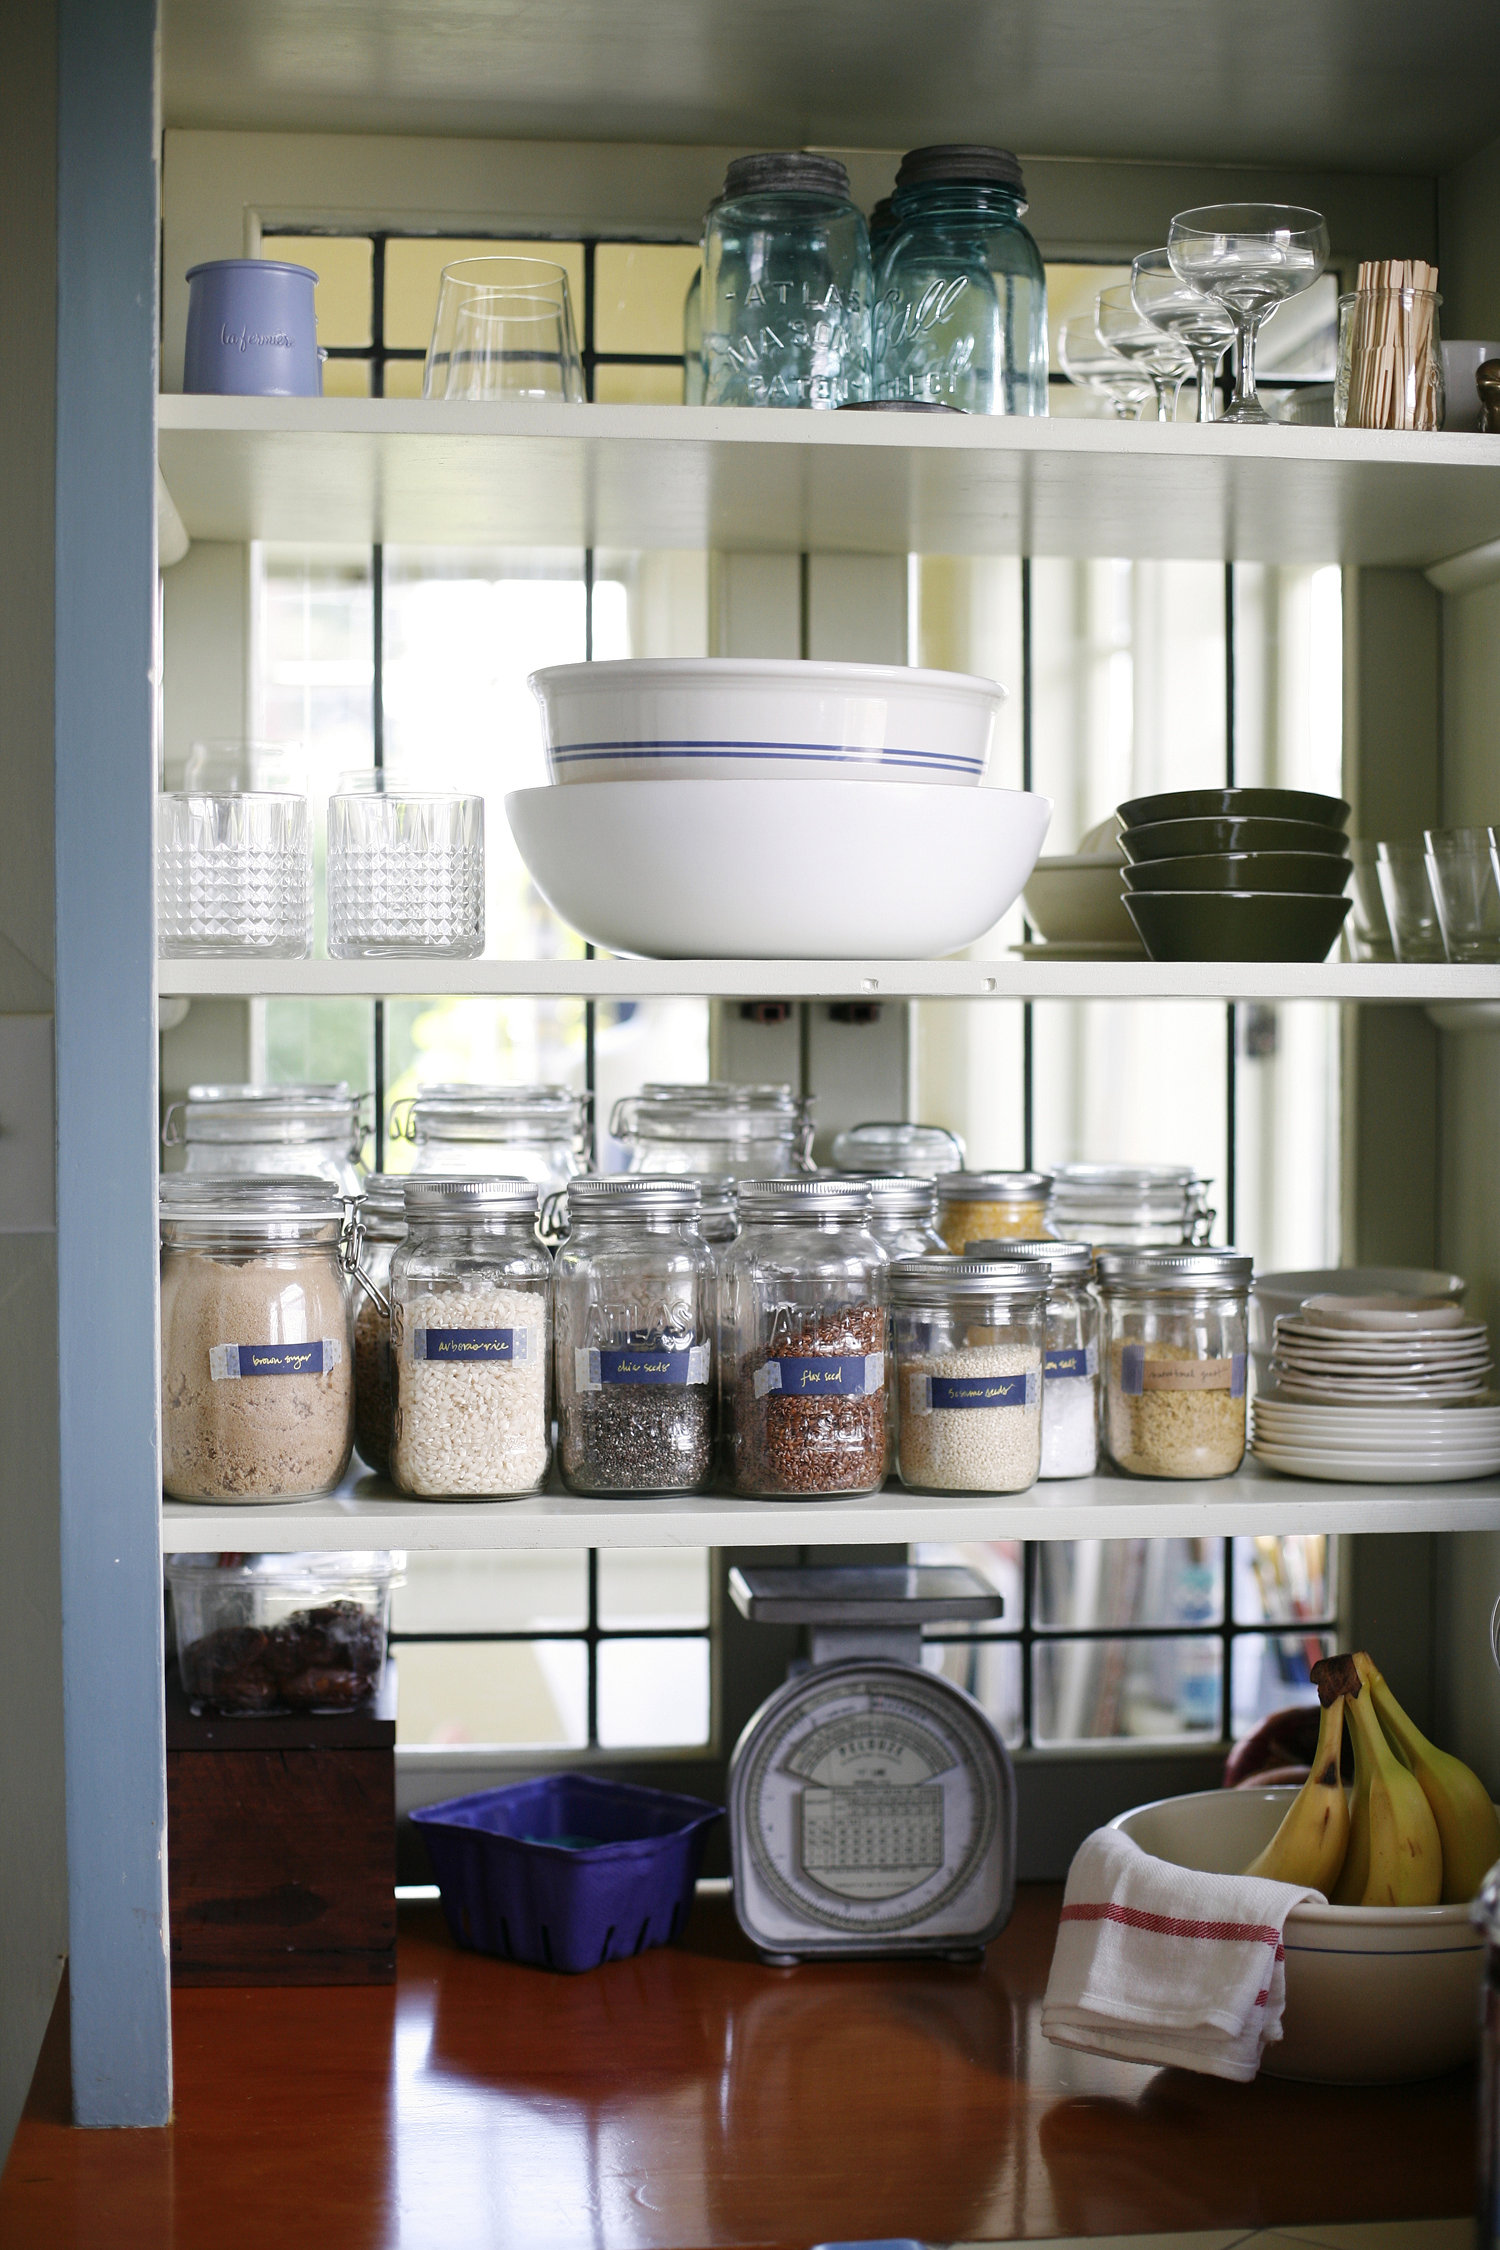 Home Organization: Embracing Order in the New Year